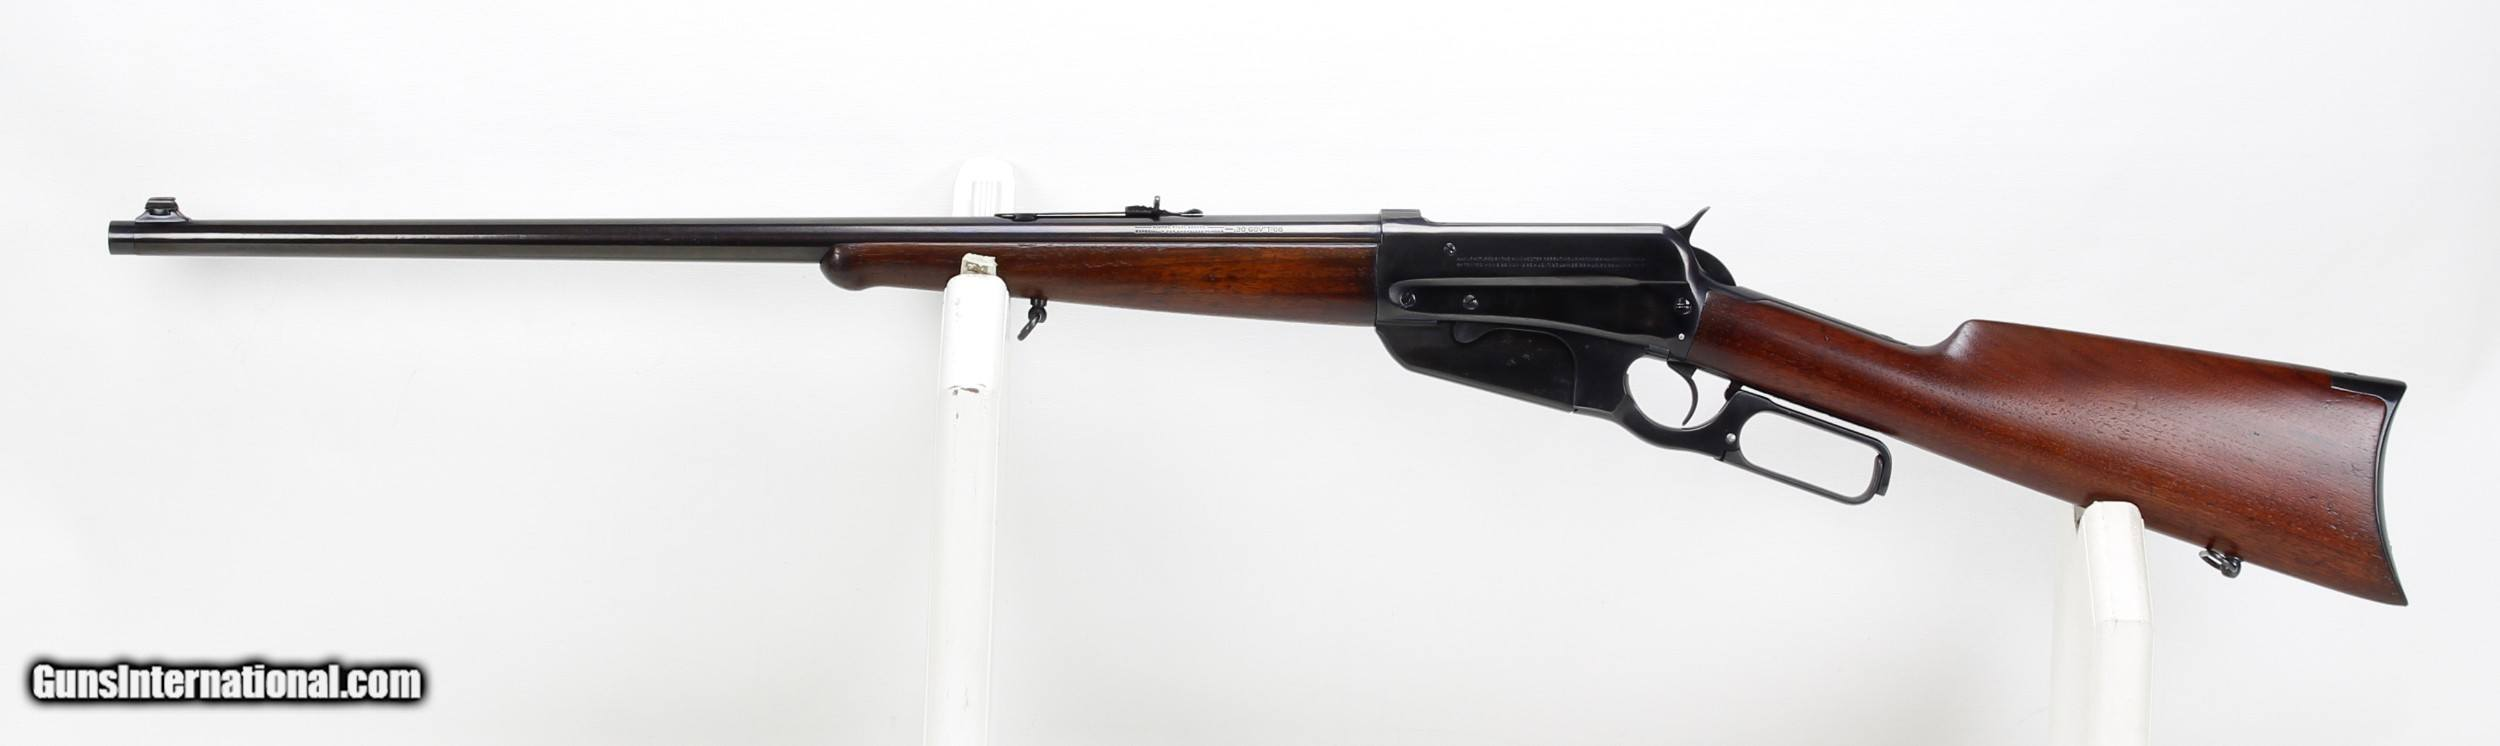 Winchester Model 32 Rifle .32 32, Factory Barrel Threaded for ...